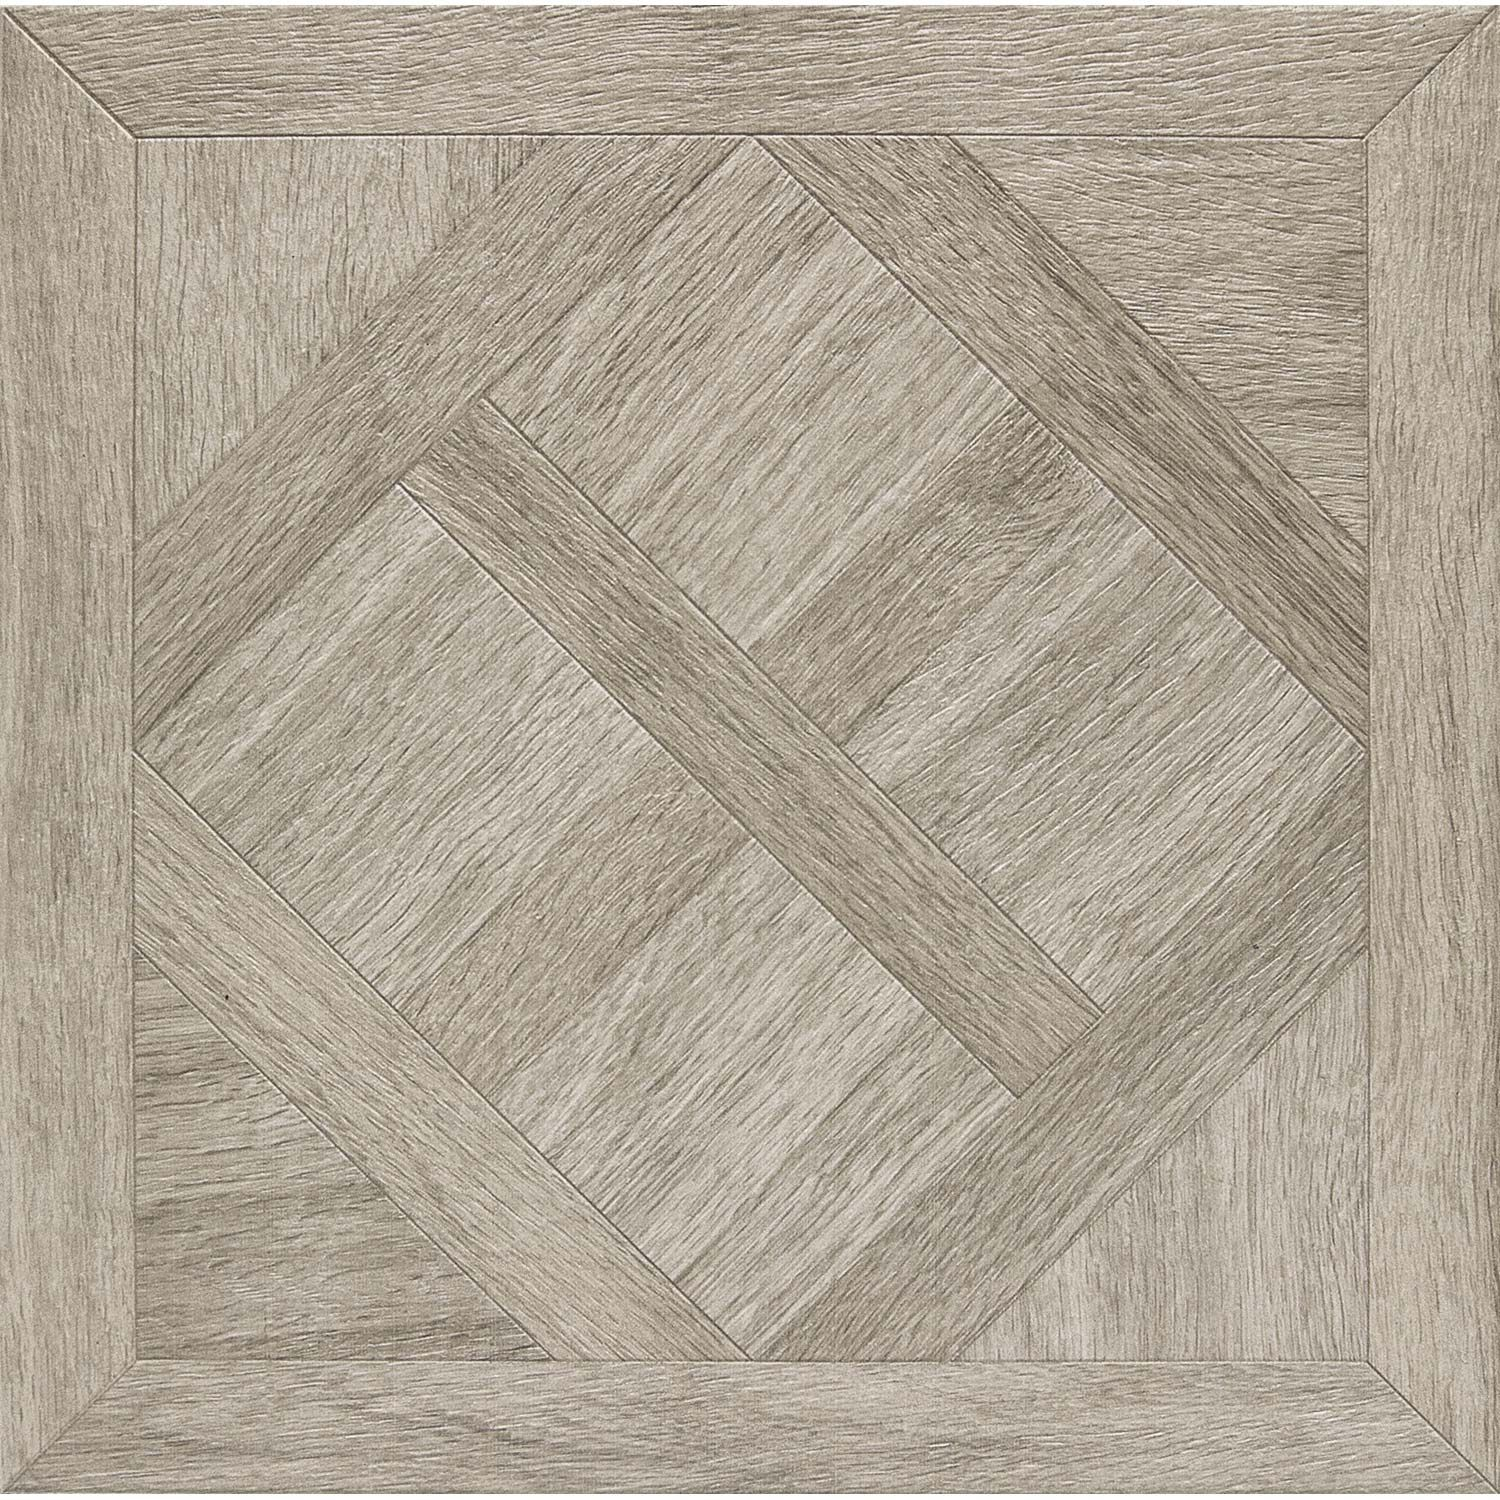 carrelage int rieur en gr s c rame maill tradiwood beige 45x45cm leroy merlin carrelage. Black Bedroom Furniture Sets. Home Design Ideas